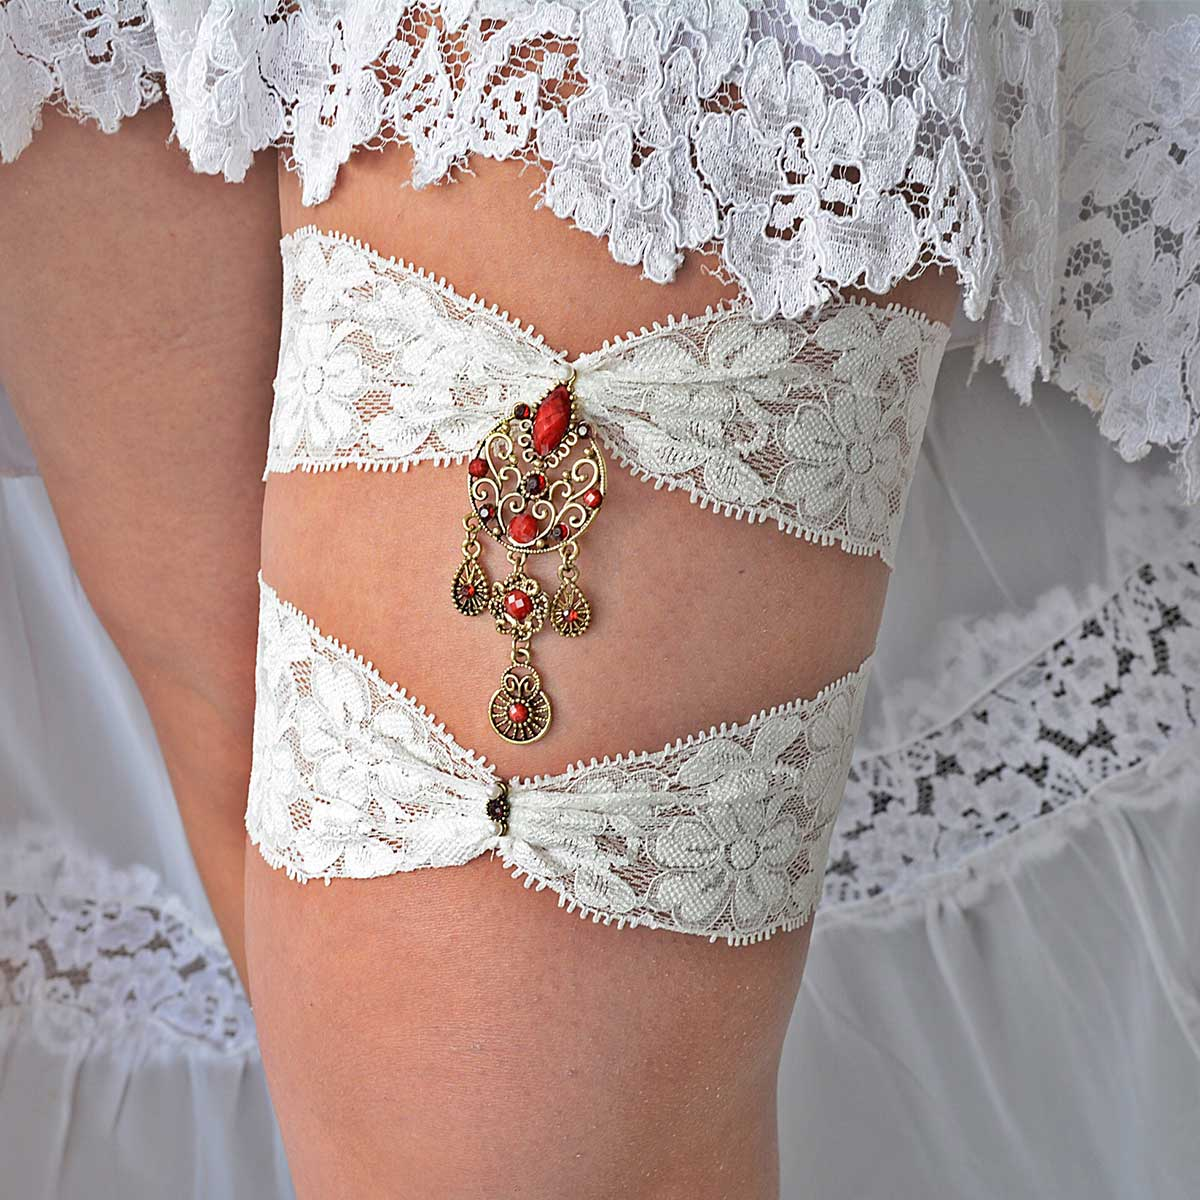 Antique Gold & Red Rhinestone Bridal Garter With Ivory Lace - Wedding Garter - SuzannaM Designs